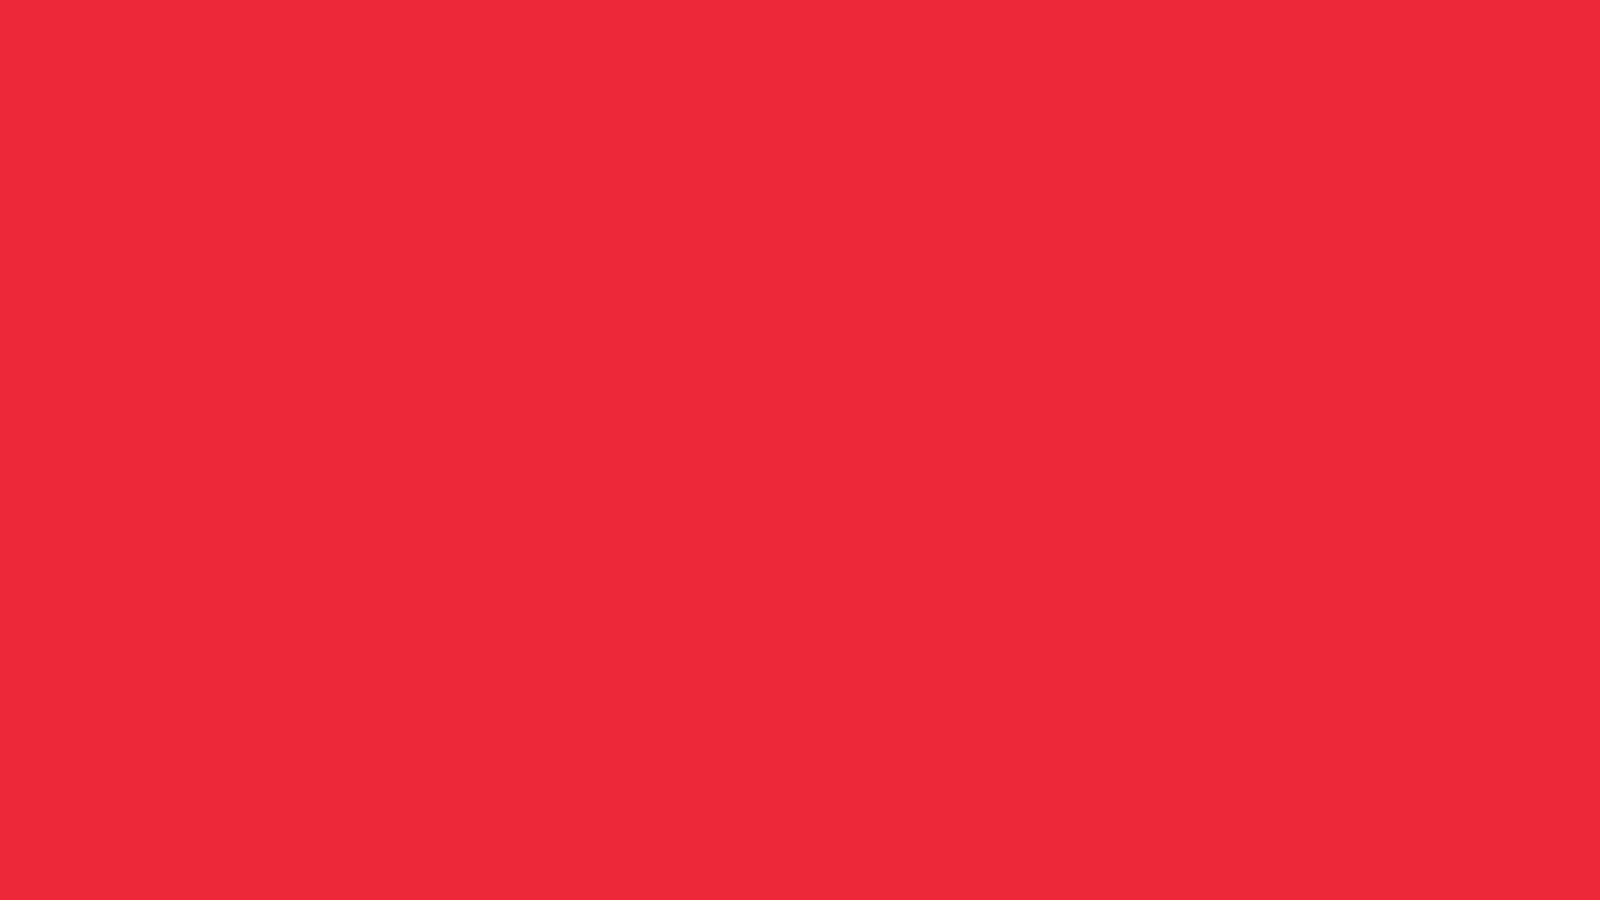 1600x900 Imperial Red Solid Color Background